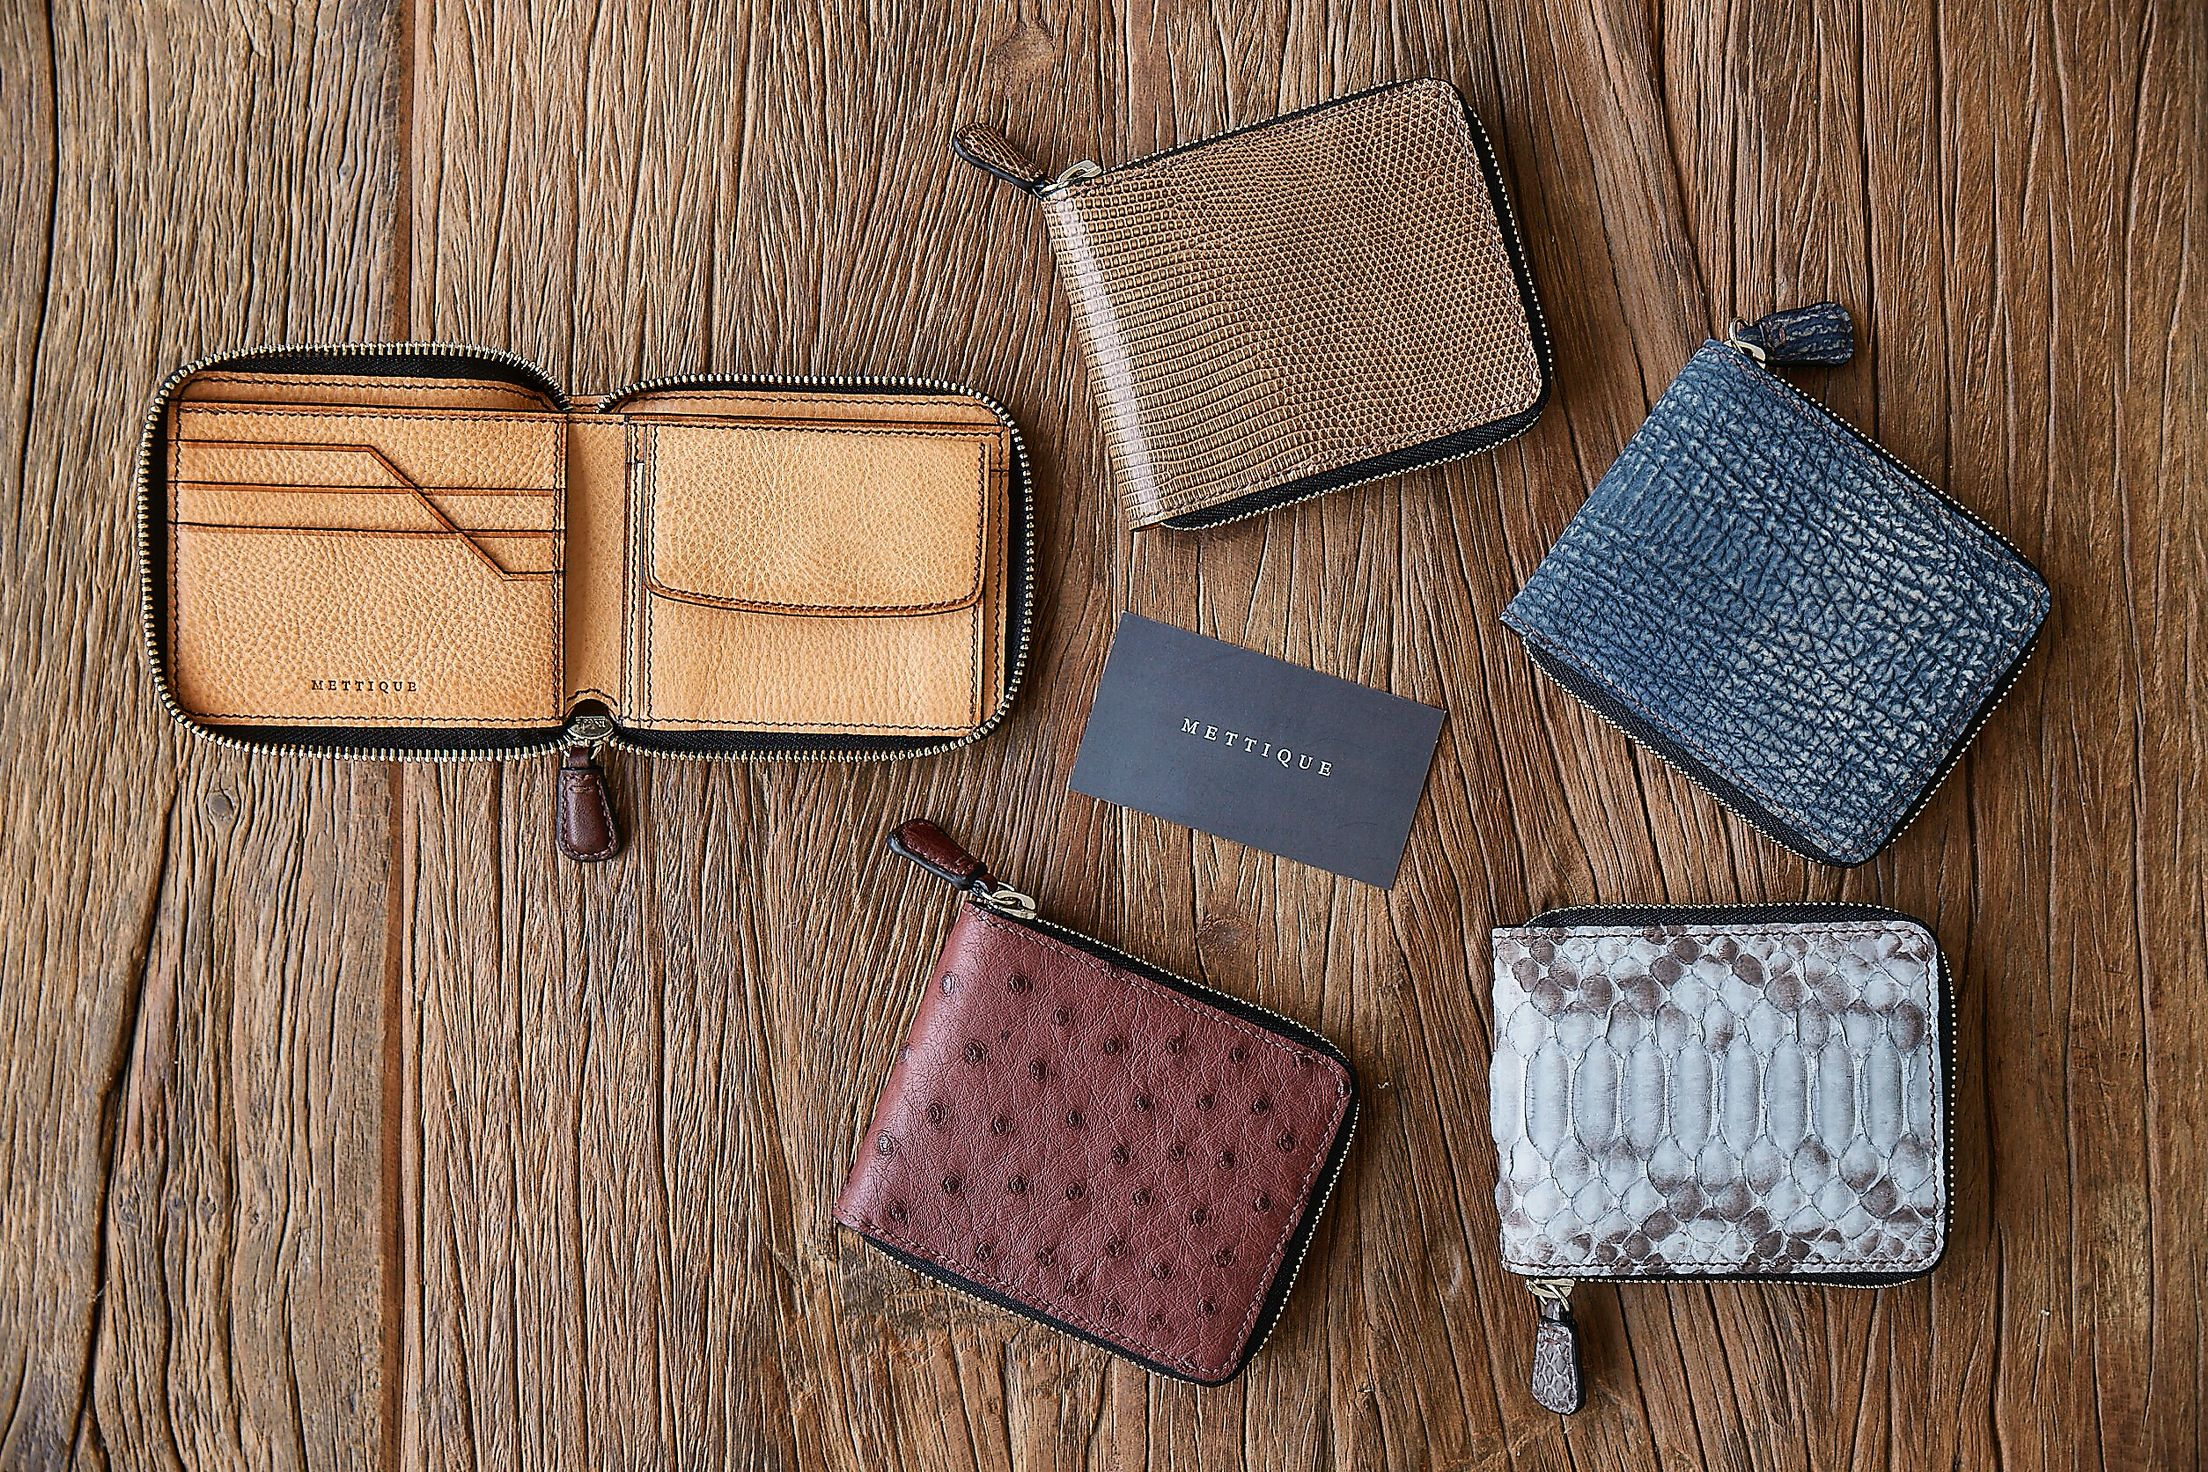 #METTIQUE #handstitch #leatheronly  #METTIQUE #TLZ2 wallets in #lizard, #shark, #ostrich and #python and Italian #cowhide lining, #handstitched with bees waxed thread.   WWW.METTIQUE.COM